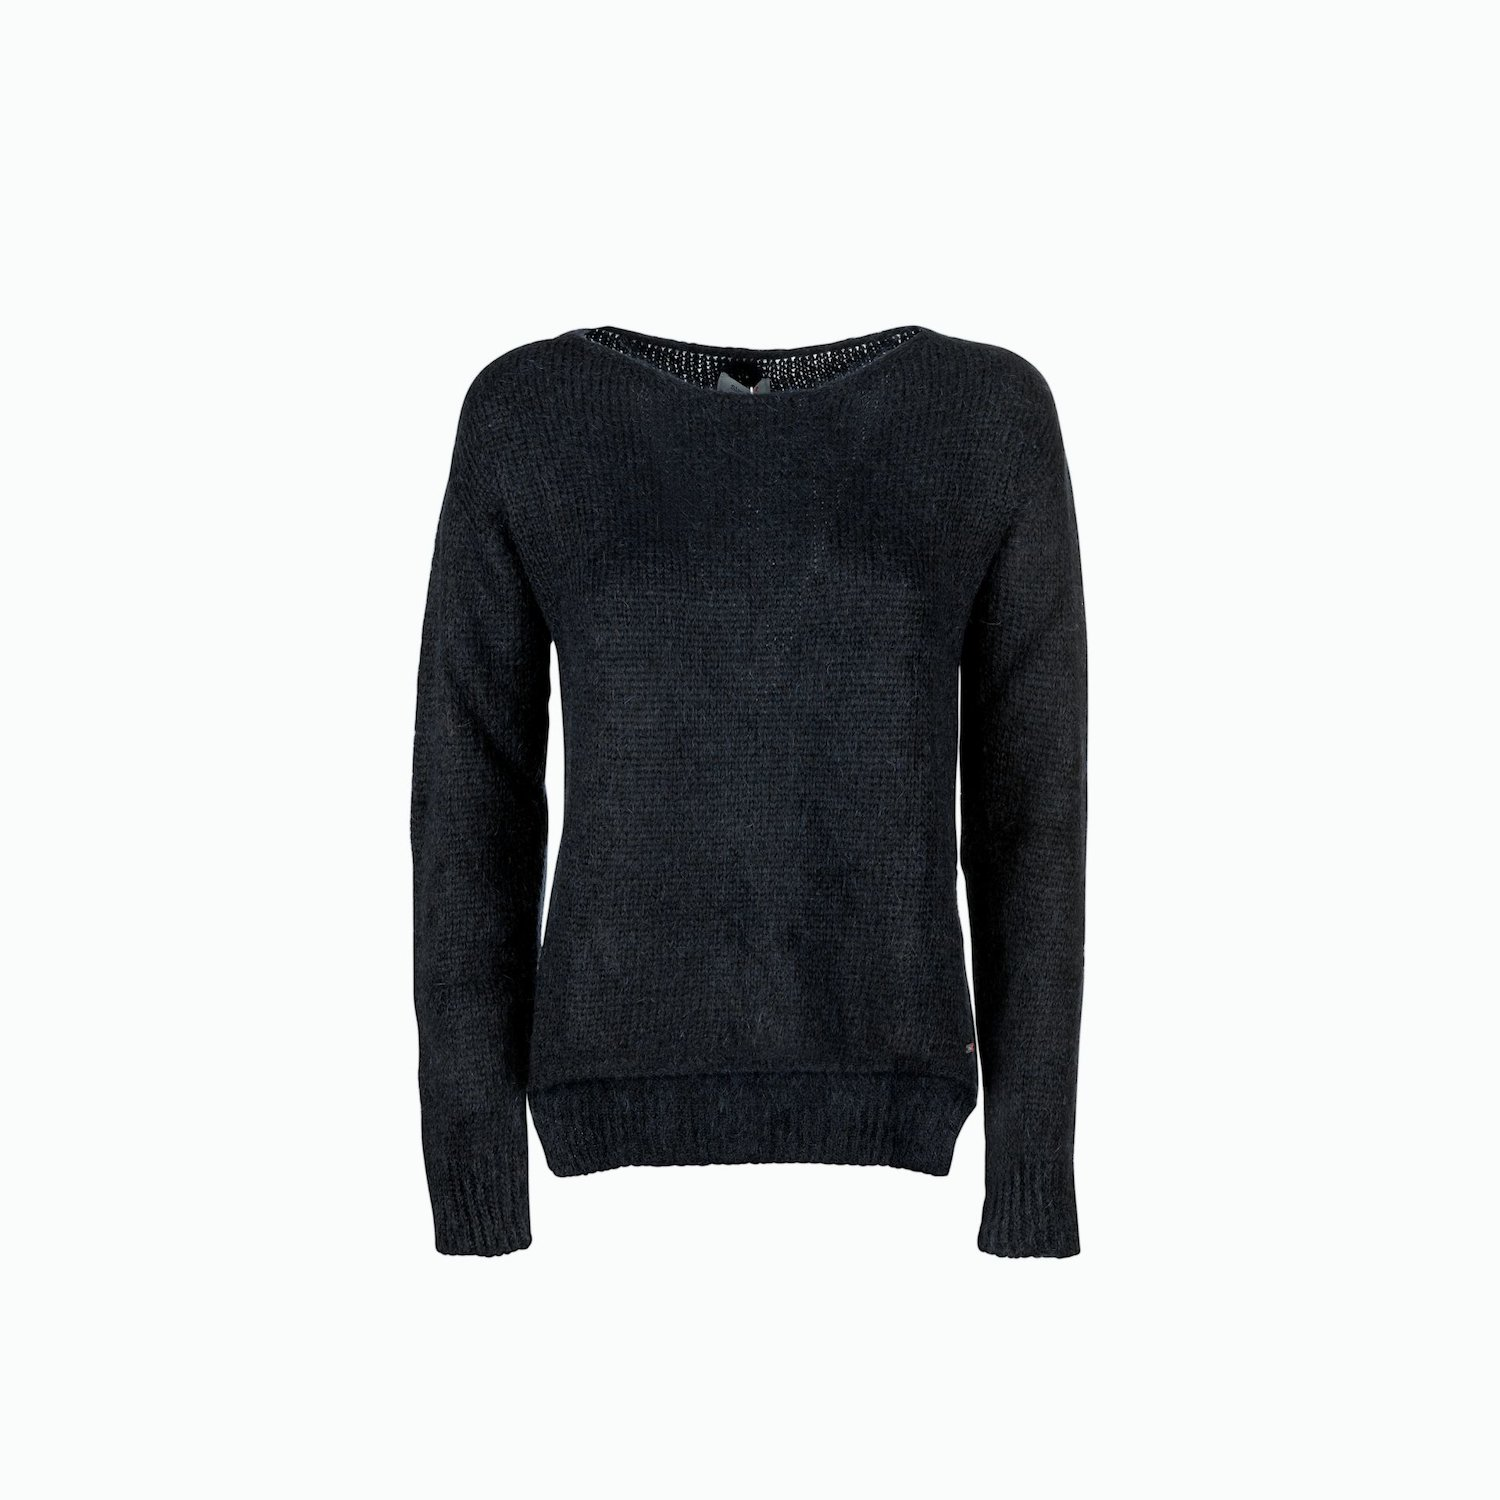 D568 Jumper - Black